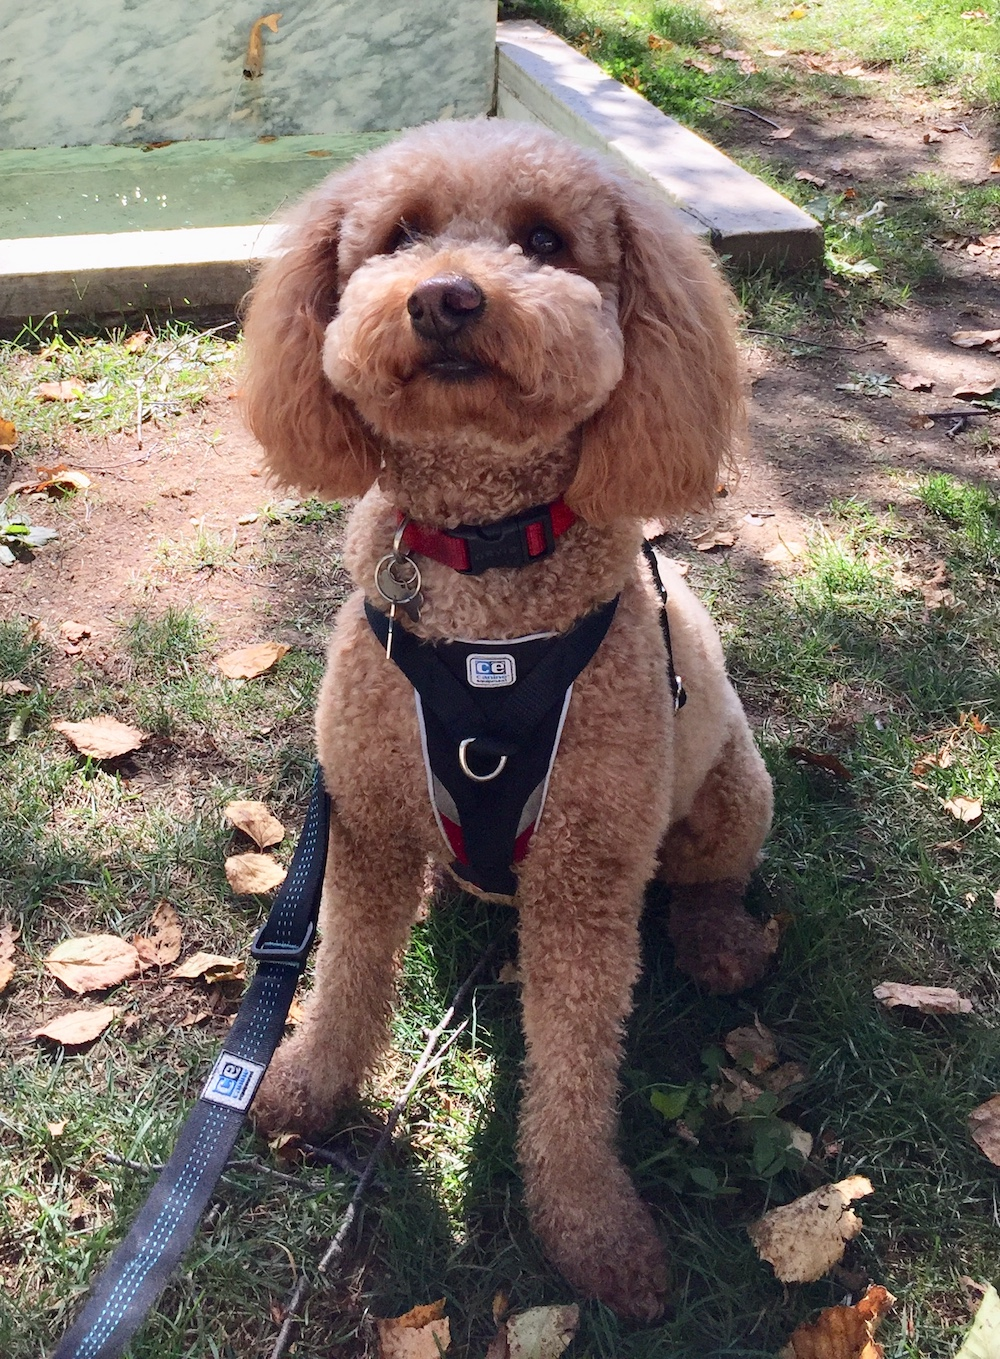 The training we received for my 2 year old pup has really changed our life for the better. Rocco has completely stopped barking at strangers at the door and through the car window. Having people over and driving are a million times less stressful (and embarrassing) now. Walking Rocco on leash is now a treat, instead of anxiety inducing. The simple strategies Rachel taught me have had profound effects. Before I worked with Rachel, I though recall was an impossible goal, but I have a new found confidence in myself and my dog while implementing the strategies Rachel has taught me…and they have been simple enough to pass along to my kids and husband so we can be consistent as a family. I would highly recommend Every Great Dog for you and your family. Rachel is approachable, down to earth, and fun to work with! - Meredith, Newton, MA